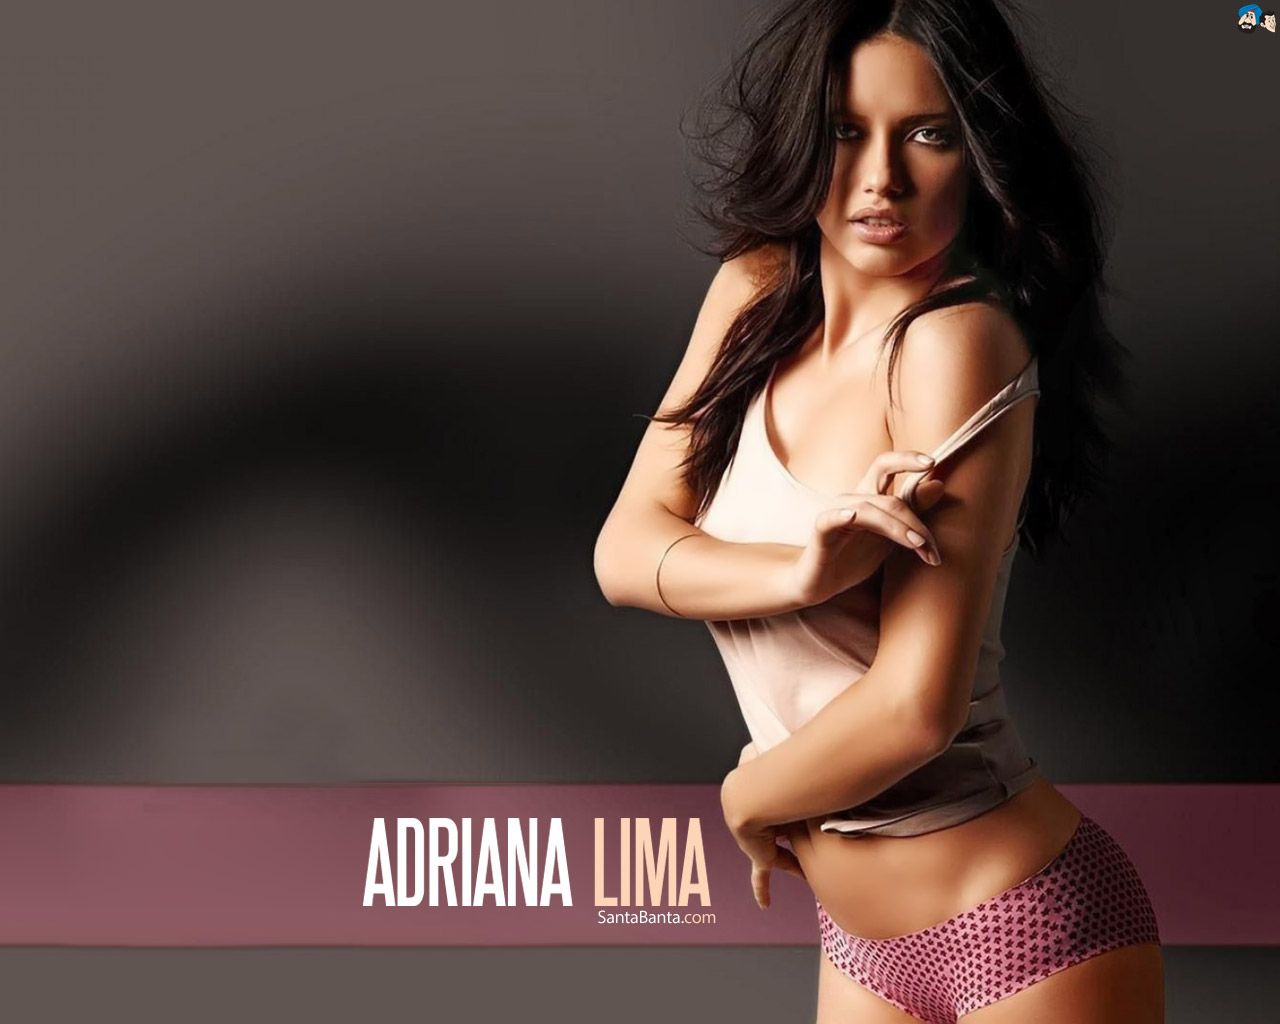 adriana lima hd wallpapers pictures hd wallpapers | wallpapers and